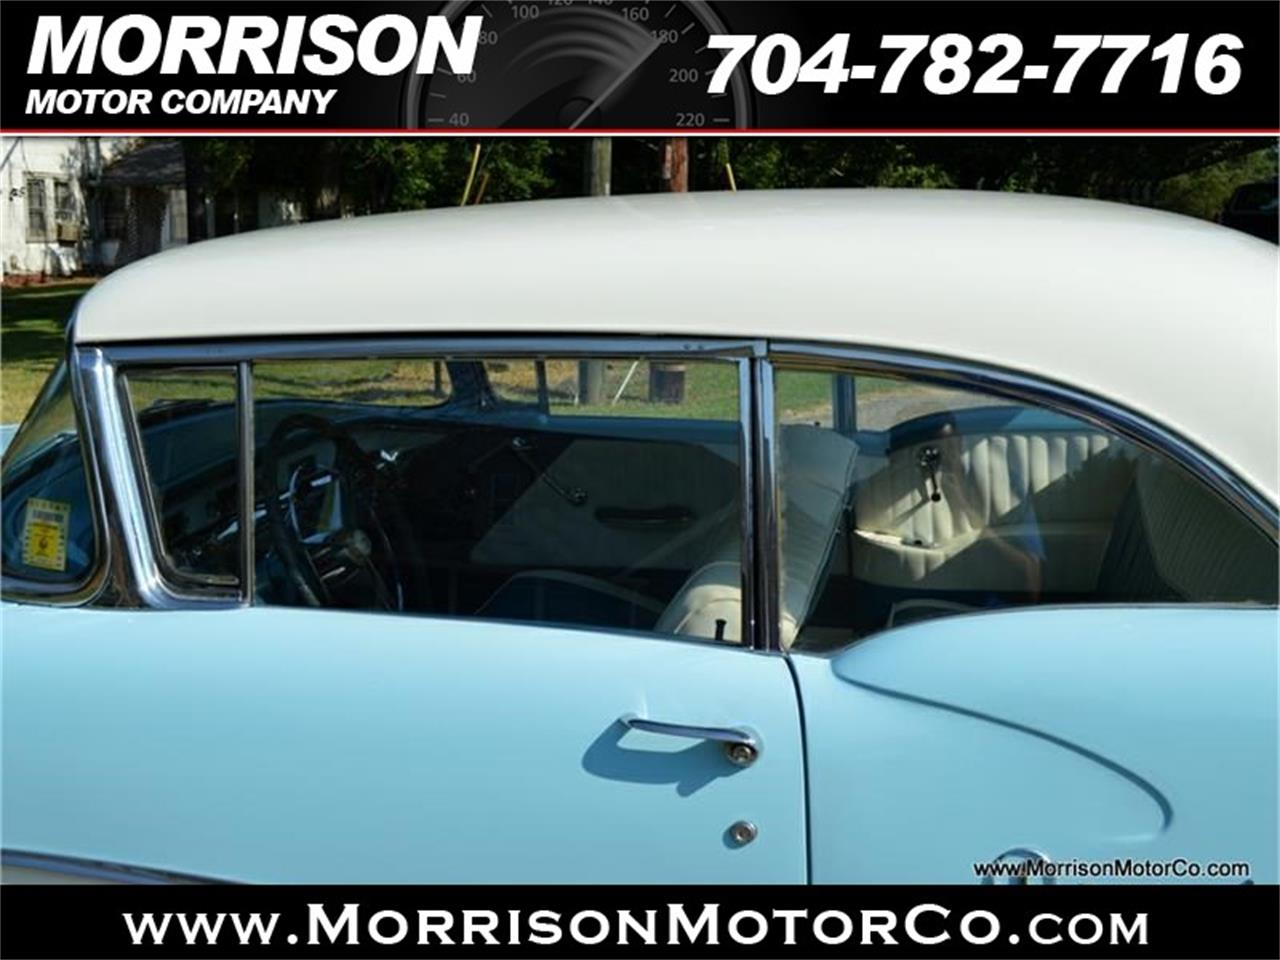 Large Picture of '56 Buick Special Riviera located in Concord North Carolina - $22,900.00 Offered by Morrison Motor Company - M8P8